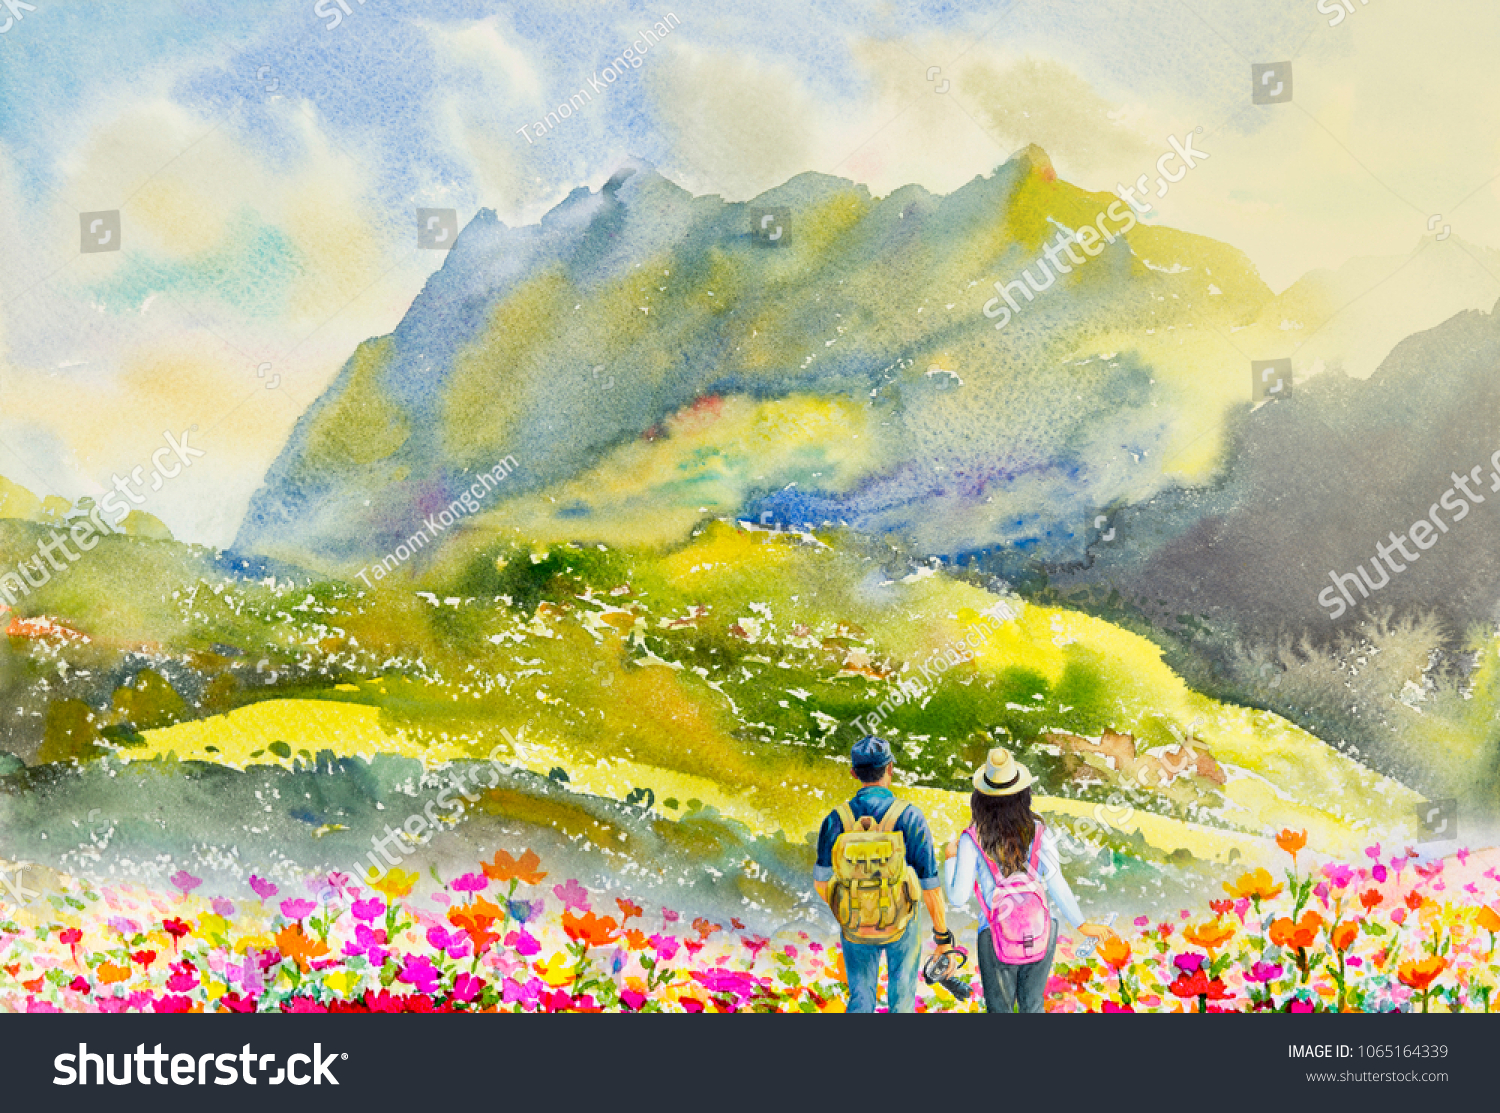 Tourist and backpack. Watercolor painting colorful illustration forest  mountain range and man 8df92e9e4bfb5